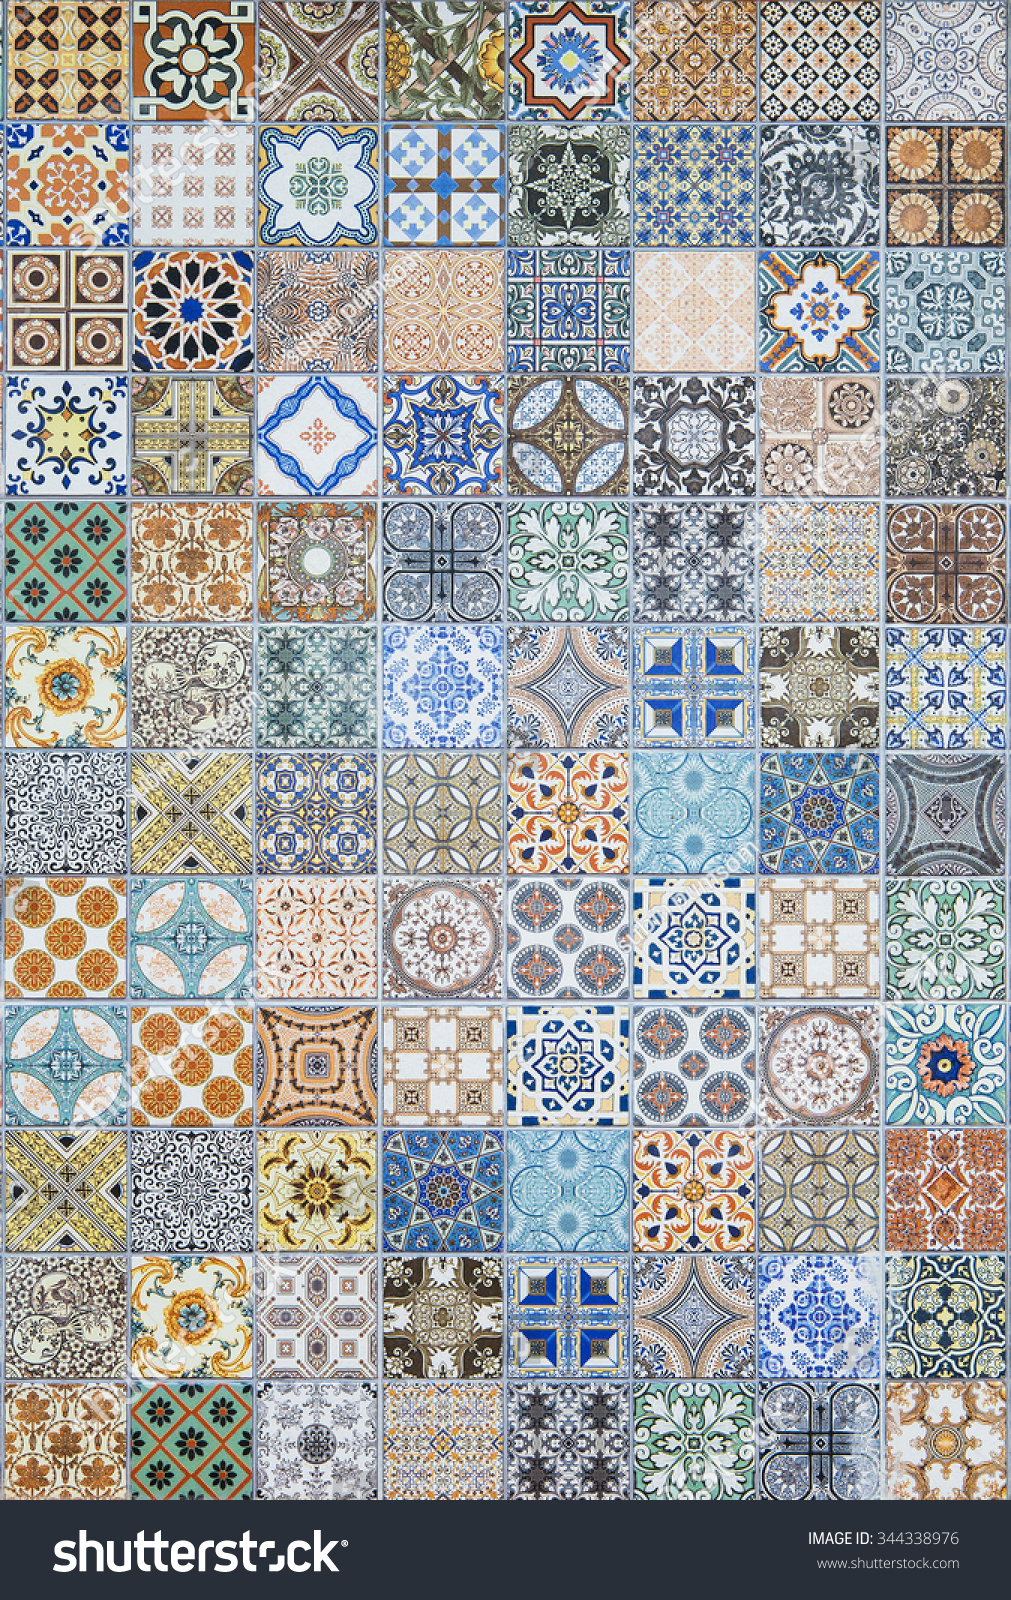 Ceramic Tiles Patterns Portugal Stock Photo (Royalty Free) 344338976 ...